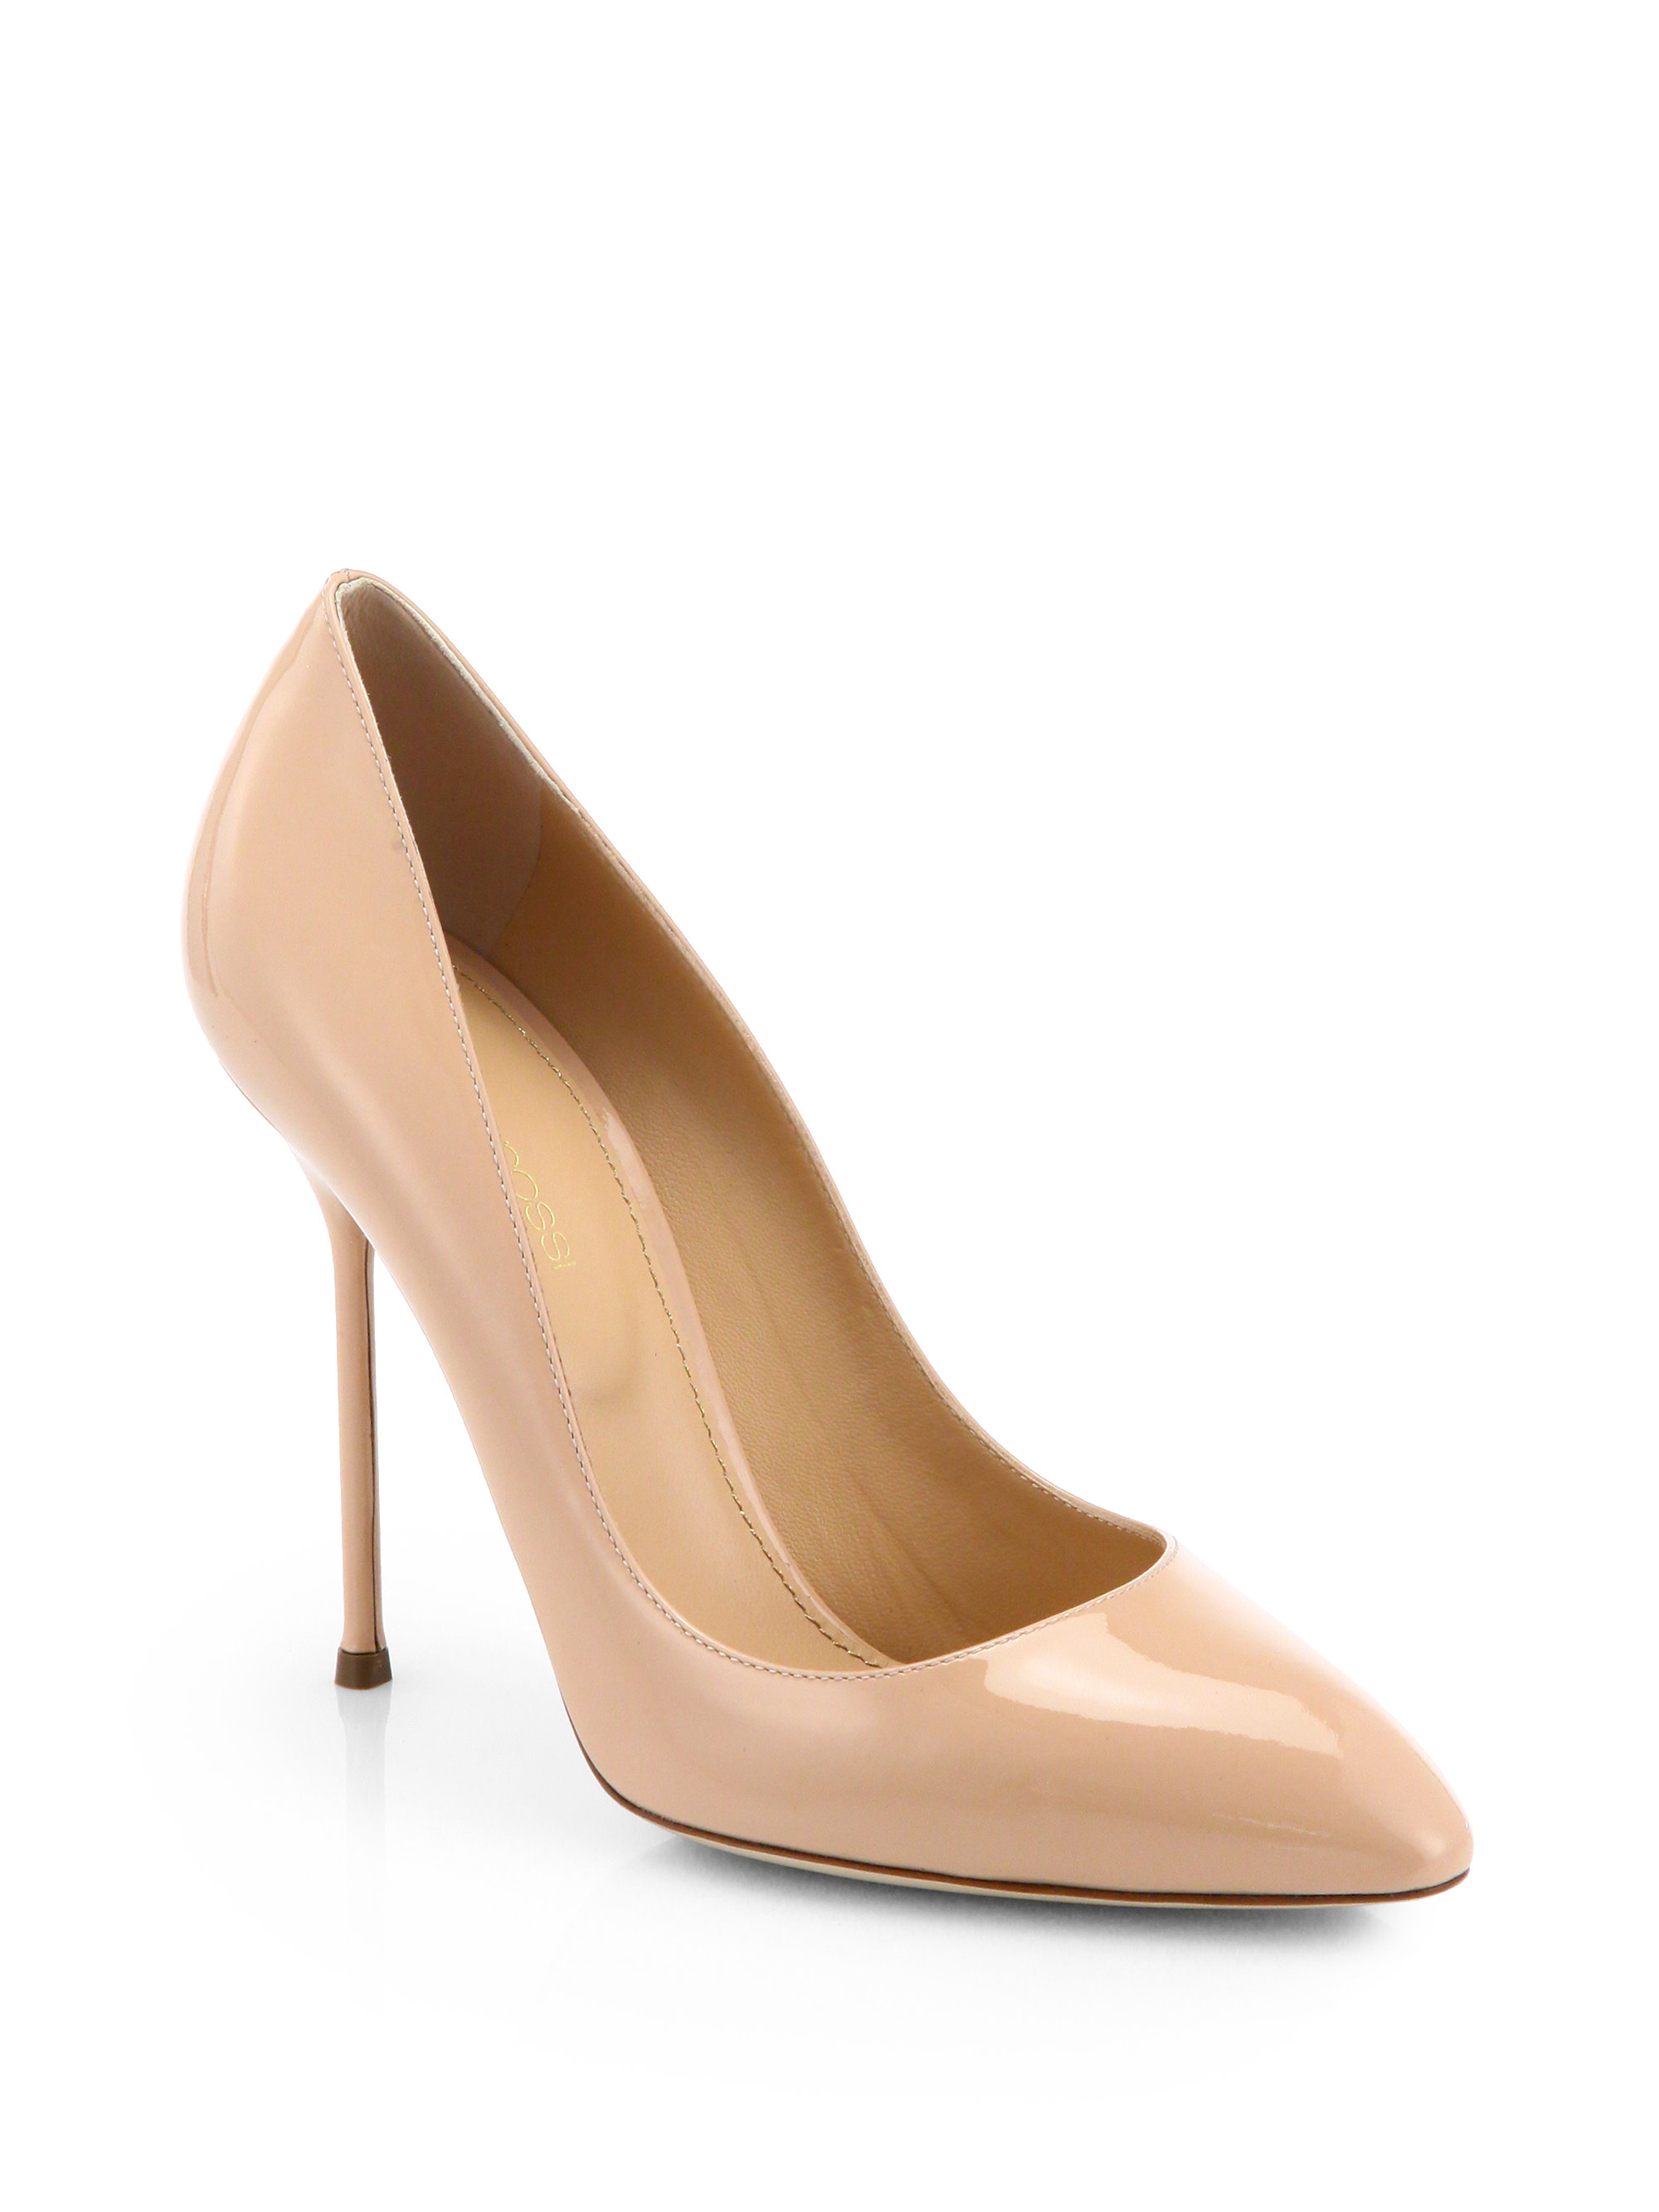 1d78dbfb265 Lyst - Sergio Rossi Chi Chi Patent Leather Pumps in Natural